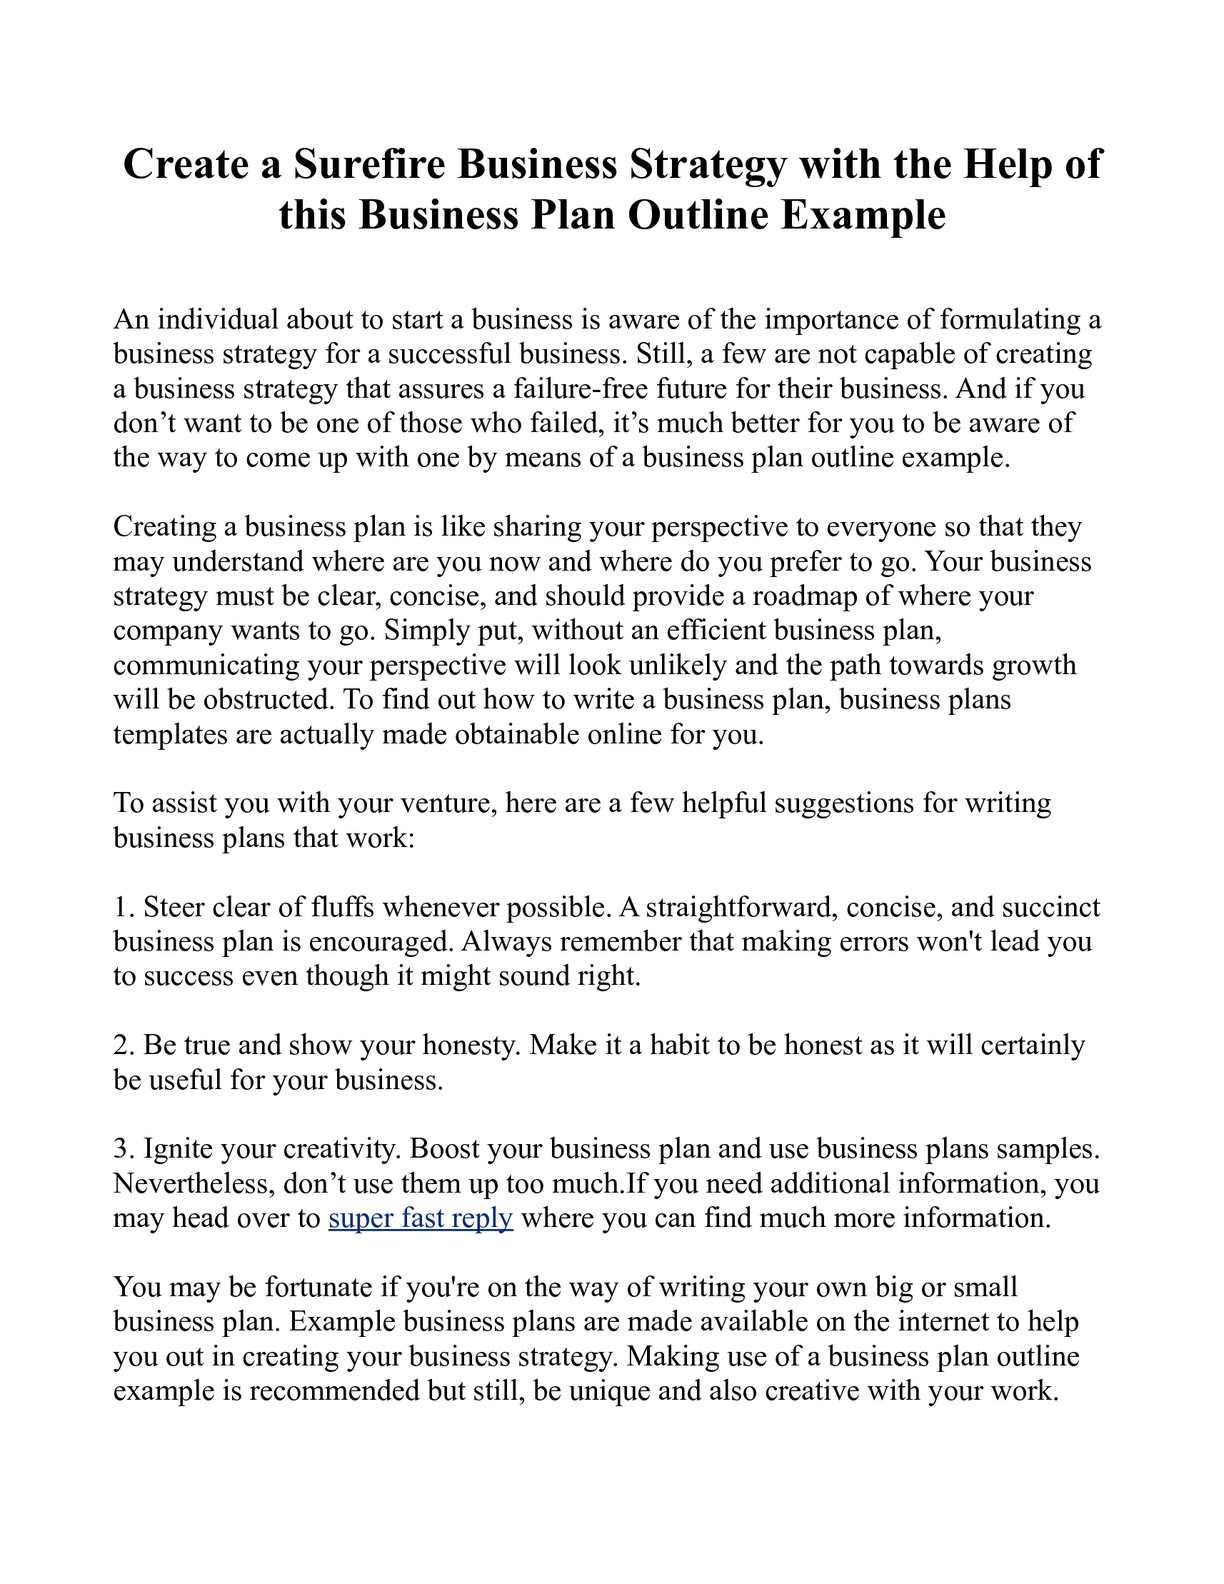 writing a business plan outline